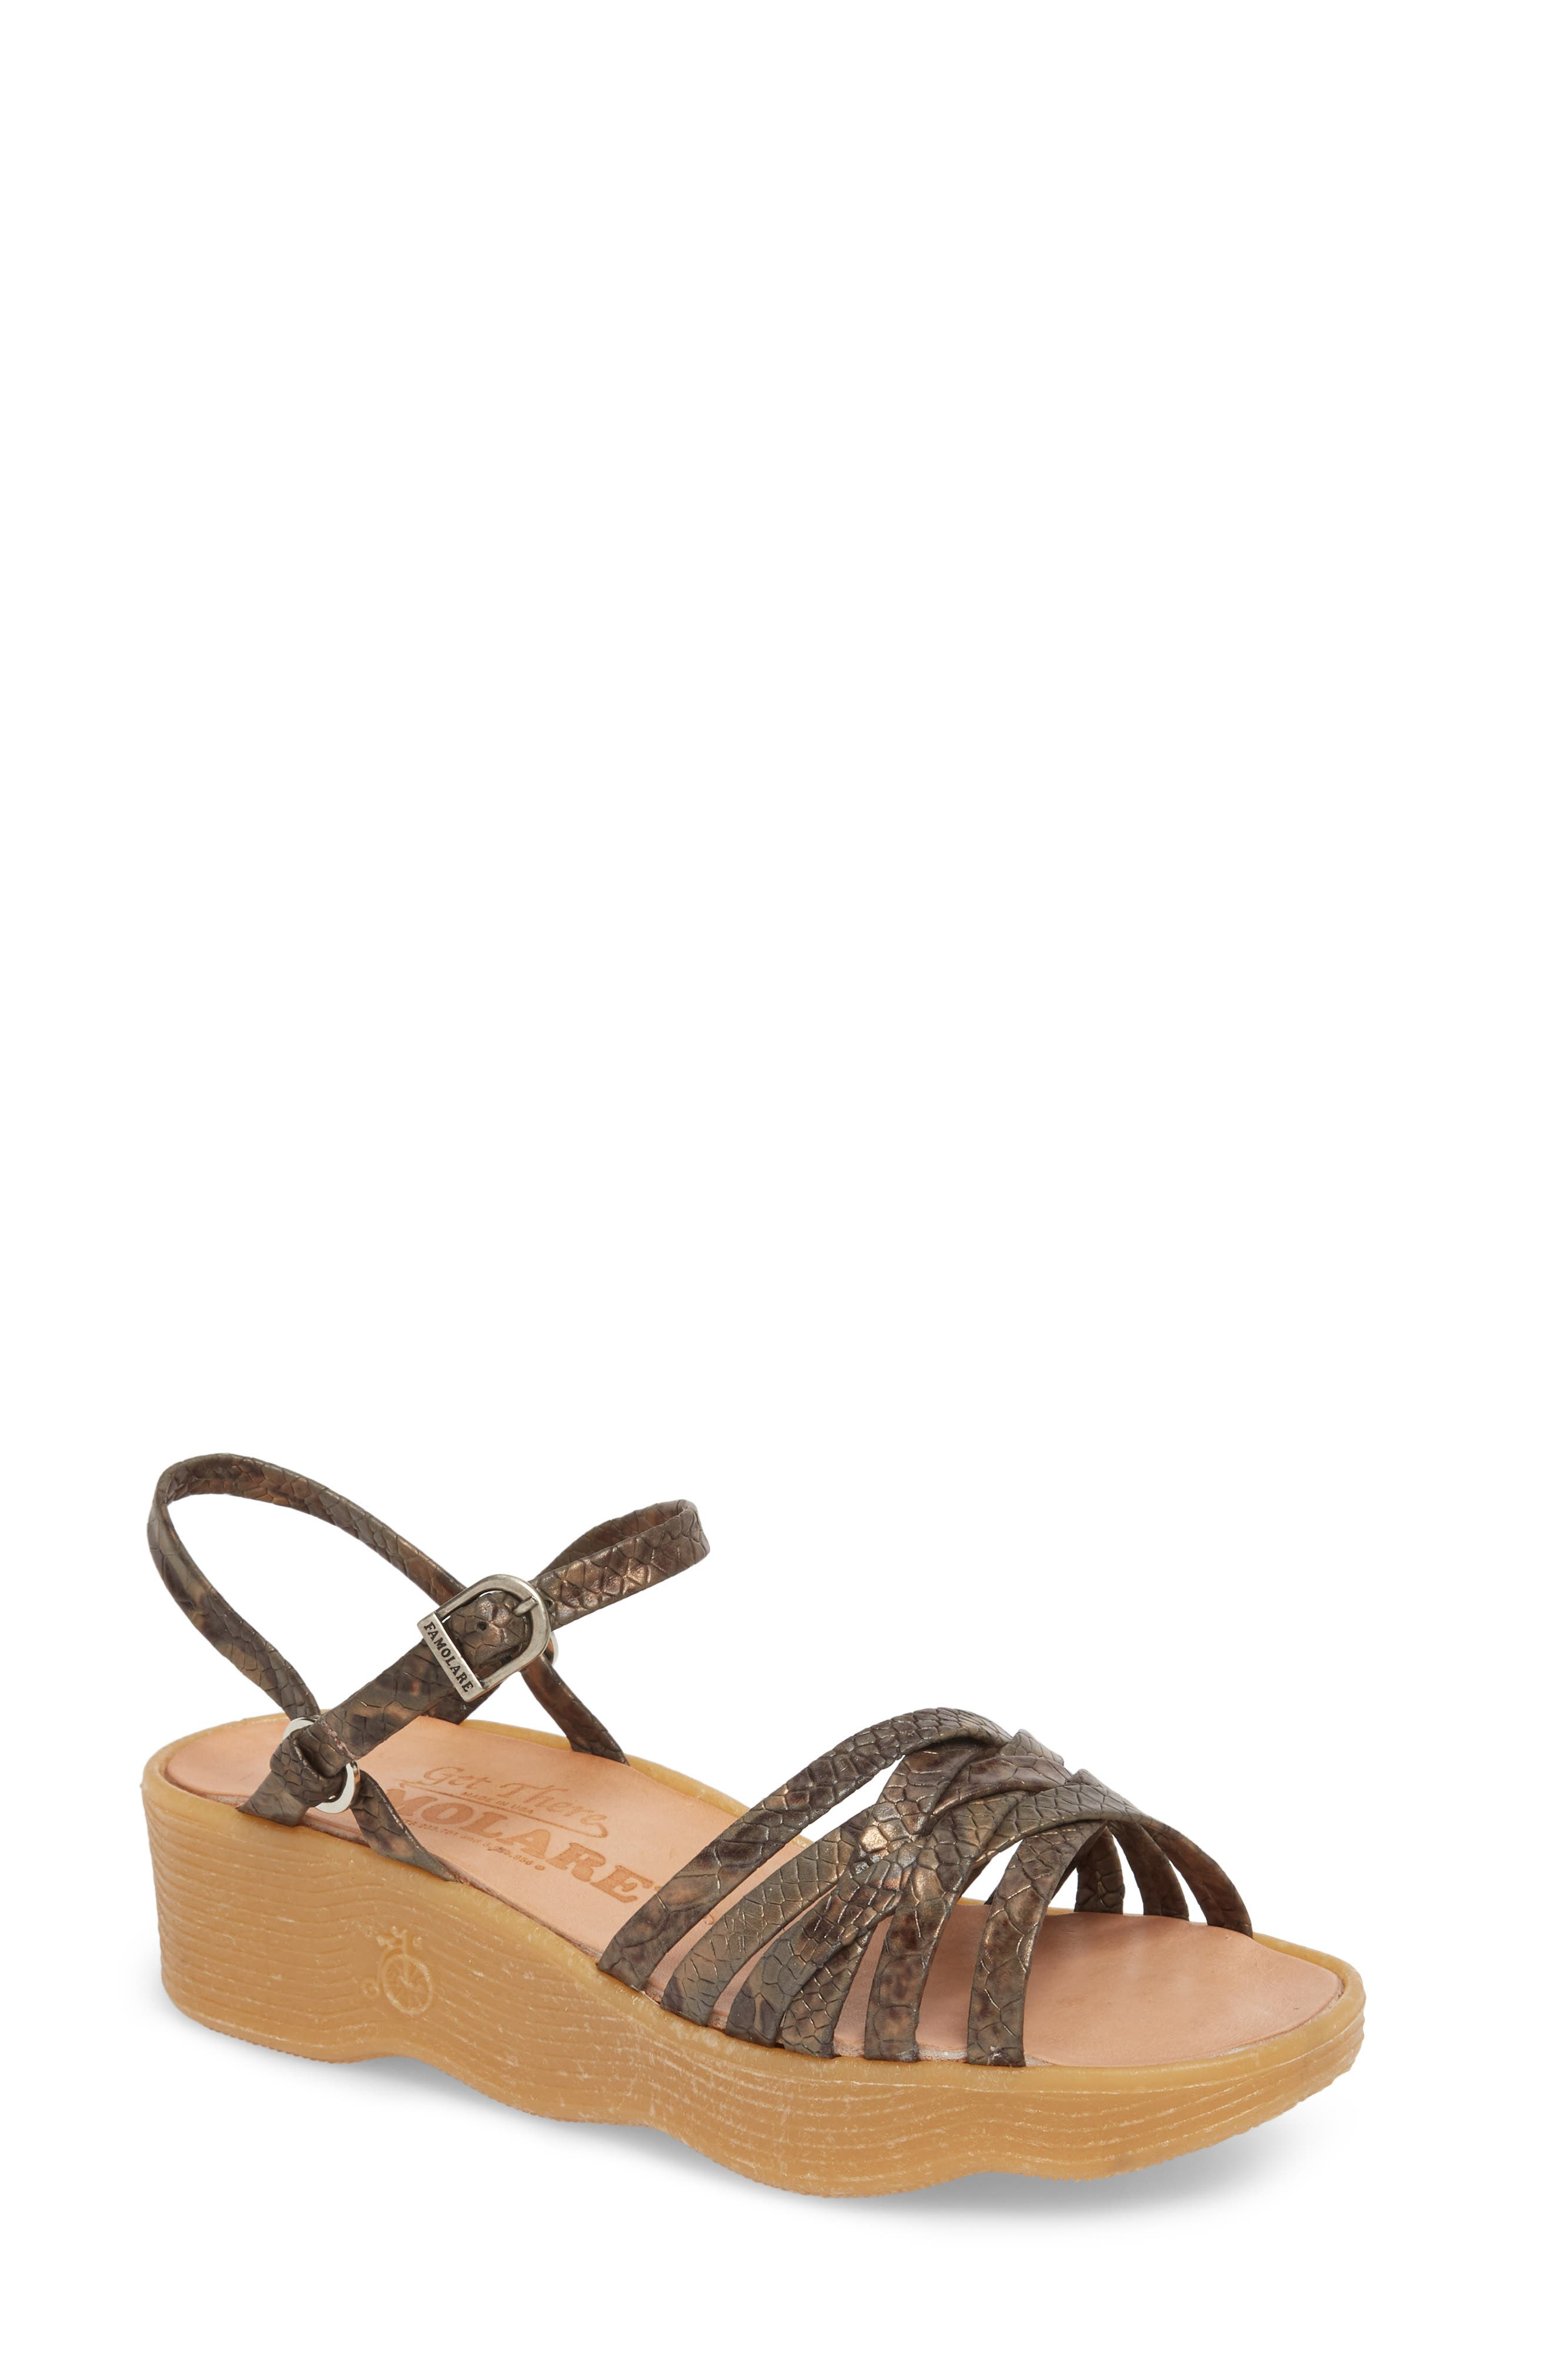 FAMOLARE, Strappy Camper Sandal, Main thumbnail 1, color, SNAKE PRINT LEATHER